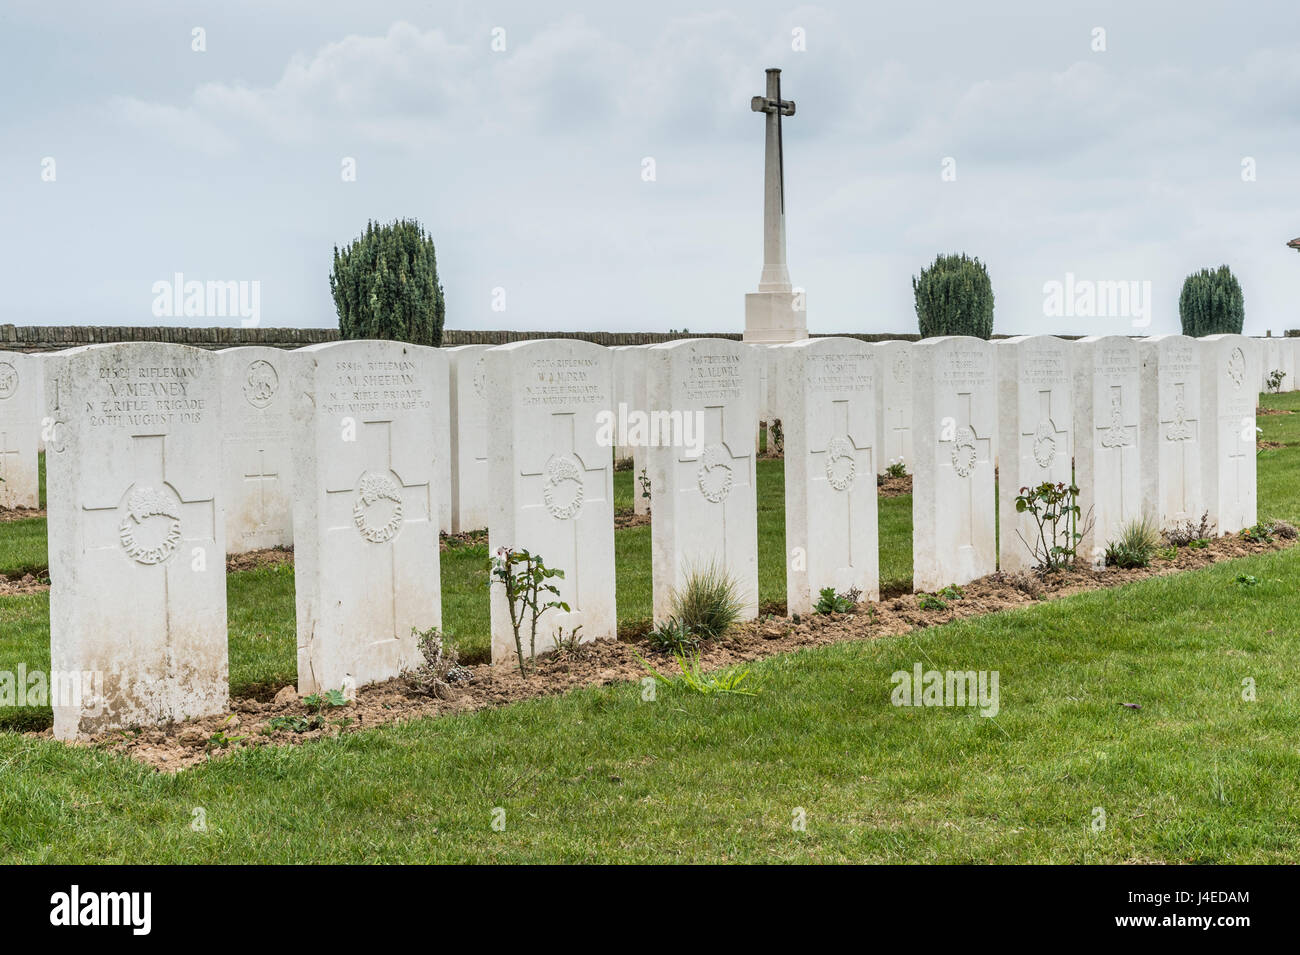 The British military cemetery of Vaulx Hill on the Somme Battlefield of Northern France with a row of New Zealand Stock Photo